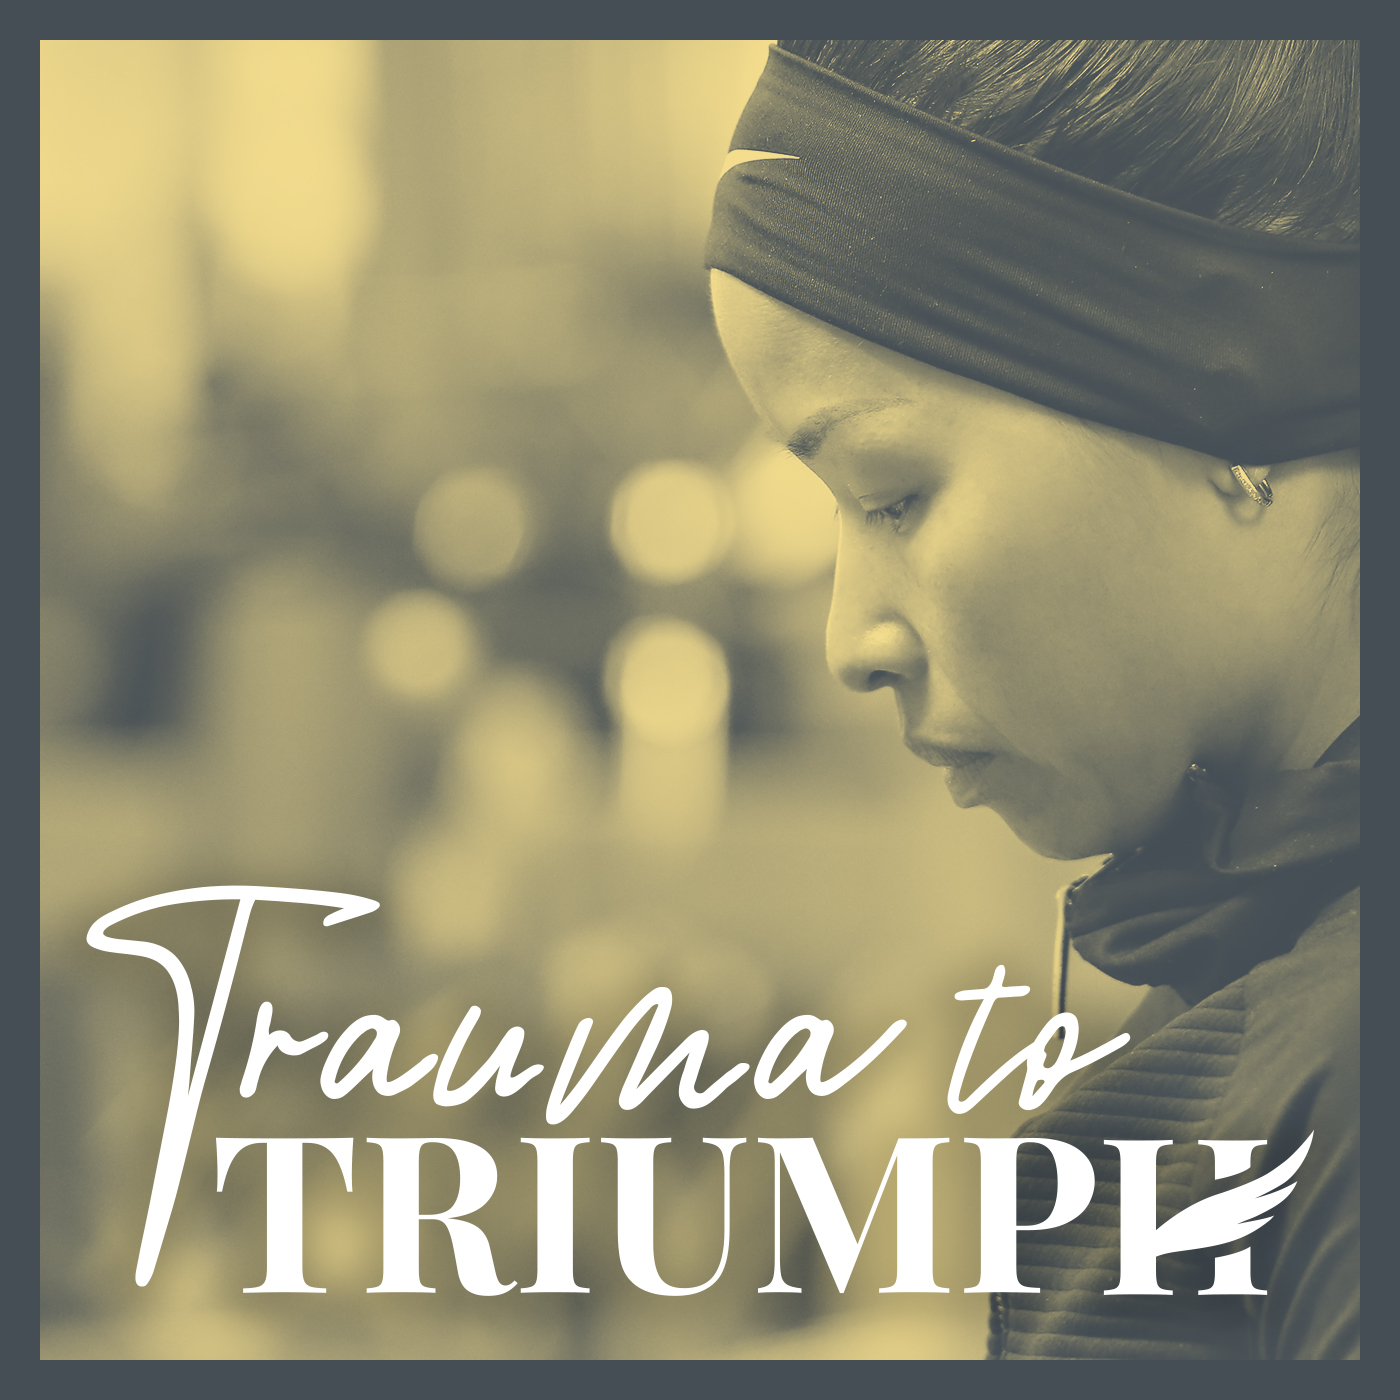 Trauma To Triumph